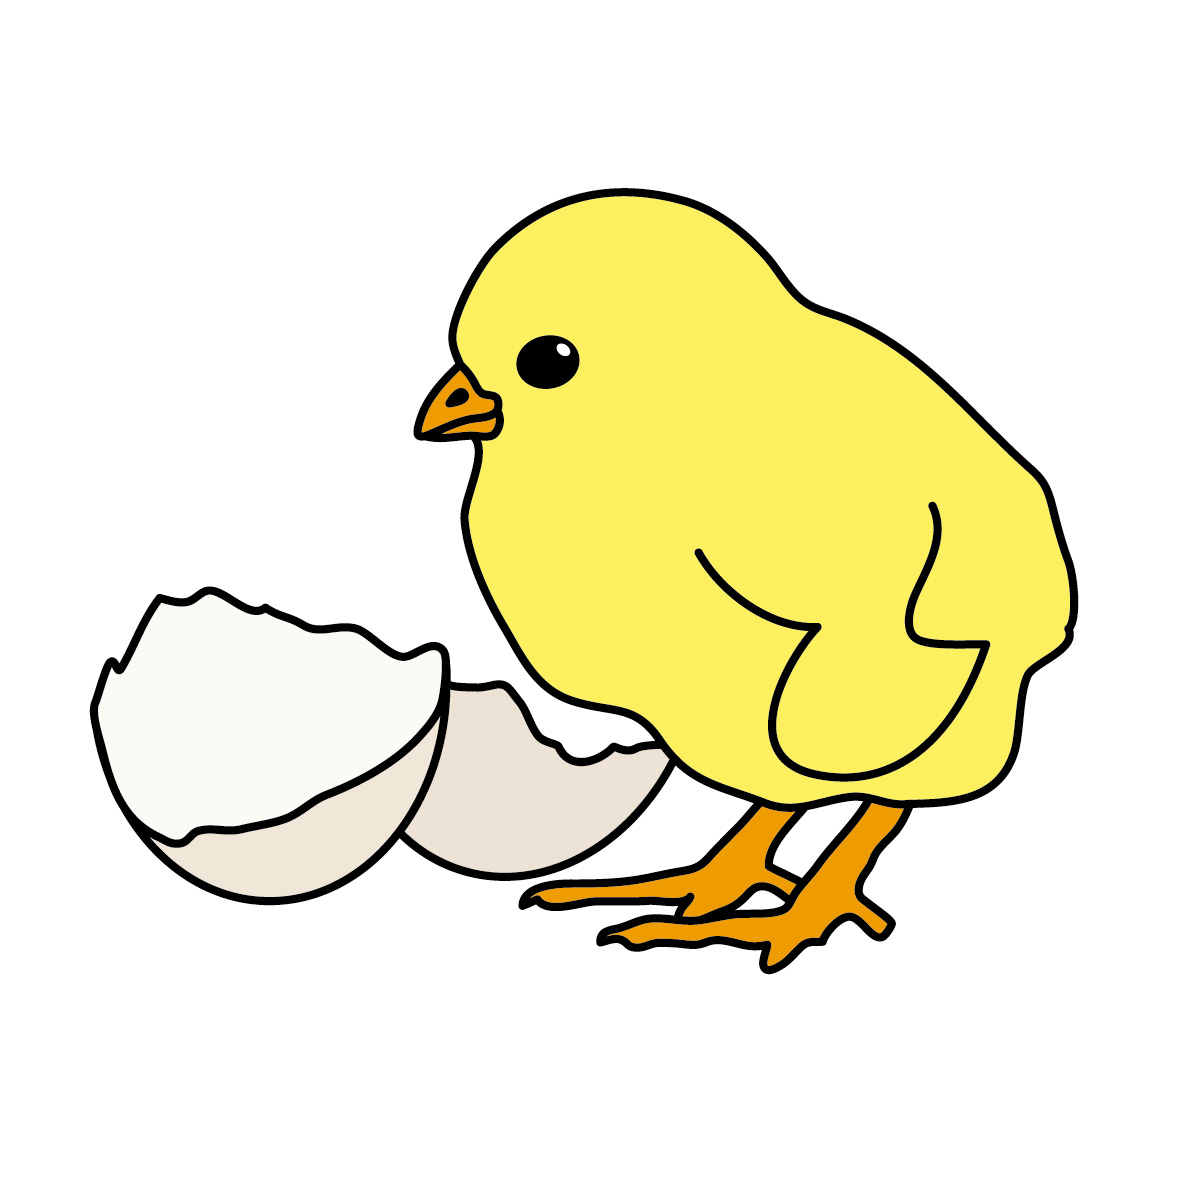 Baby chickens clipart - photo#14